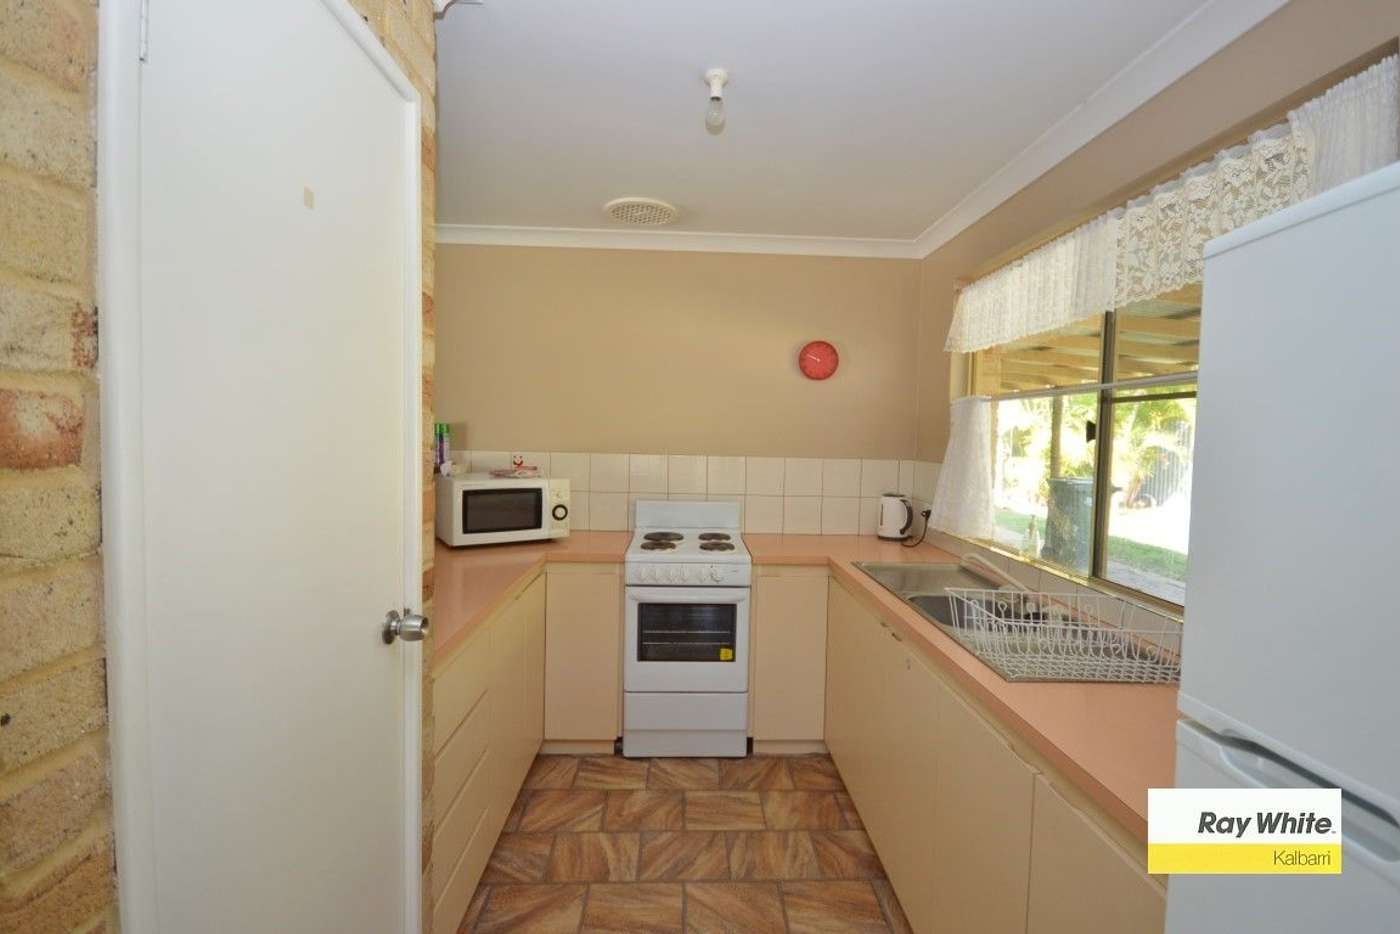 Seventh view of Homely house listing, 46 Glass Street, Kalbarri WA 6536